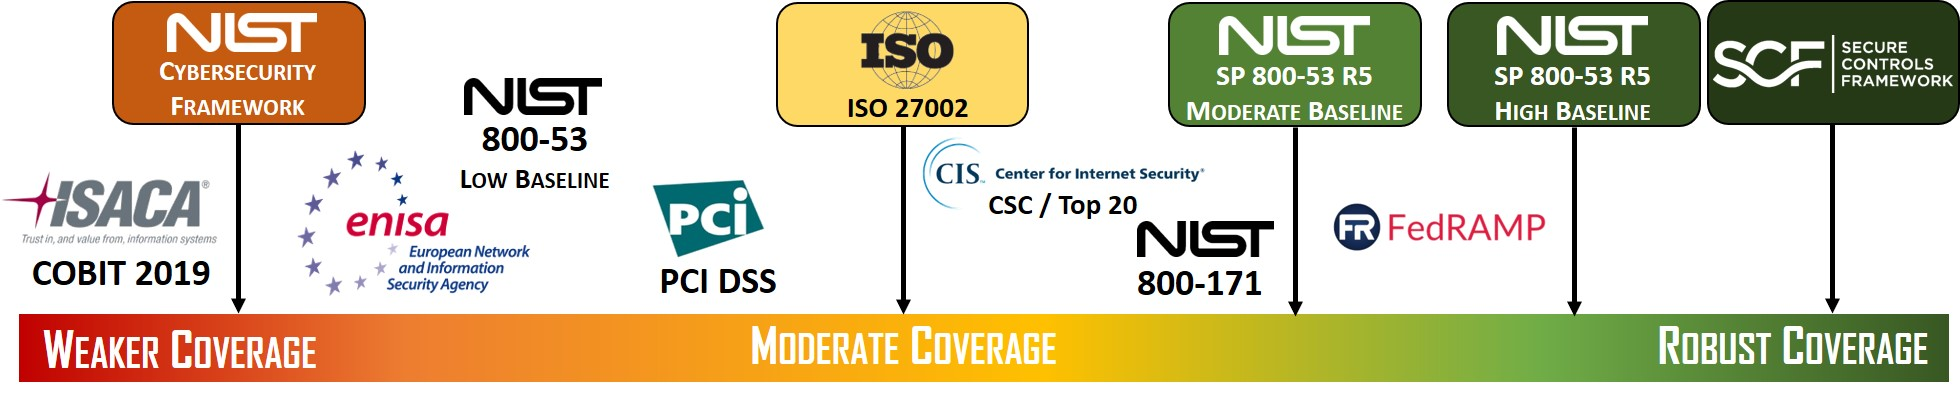 2021-cybersecurity-frameworks-comparison-nist-csf-vs-iso-27002-vs-nist-800-53-r5-vs-scf.jpg